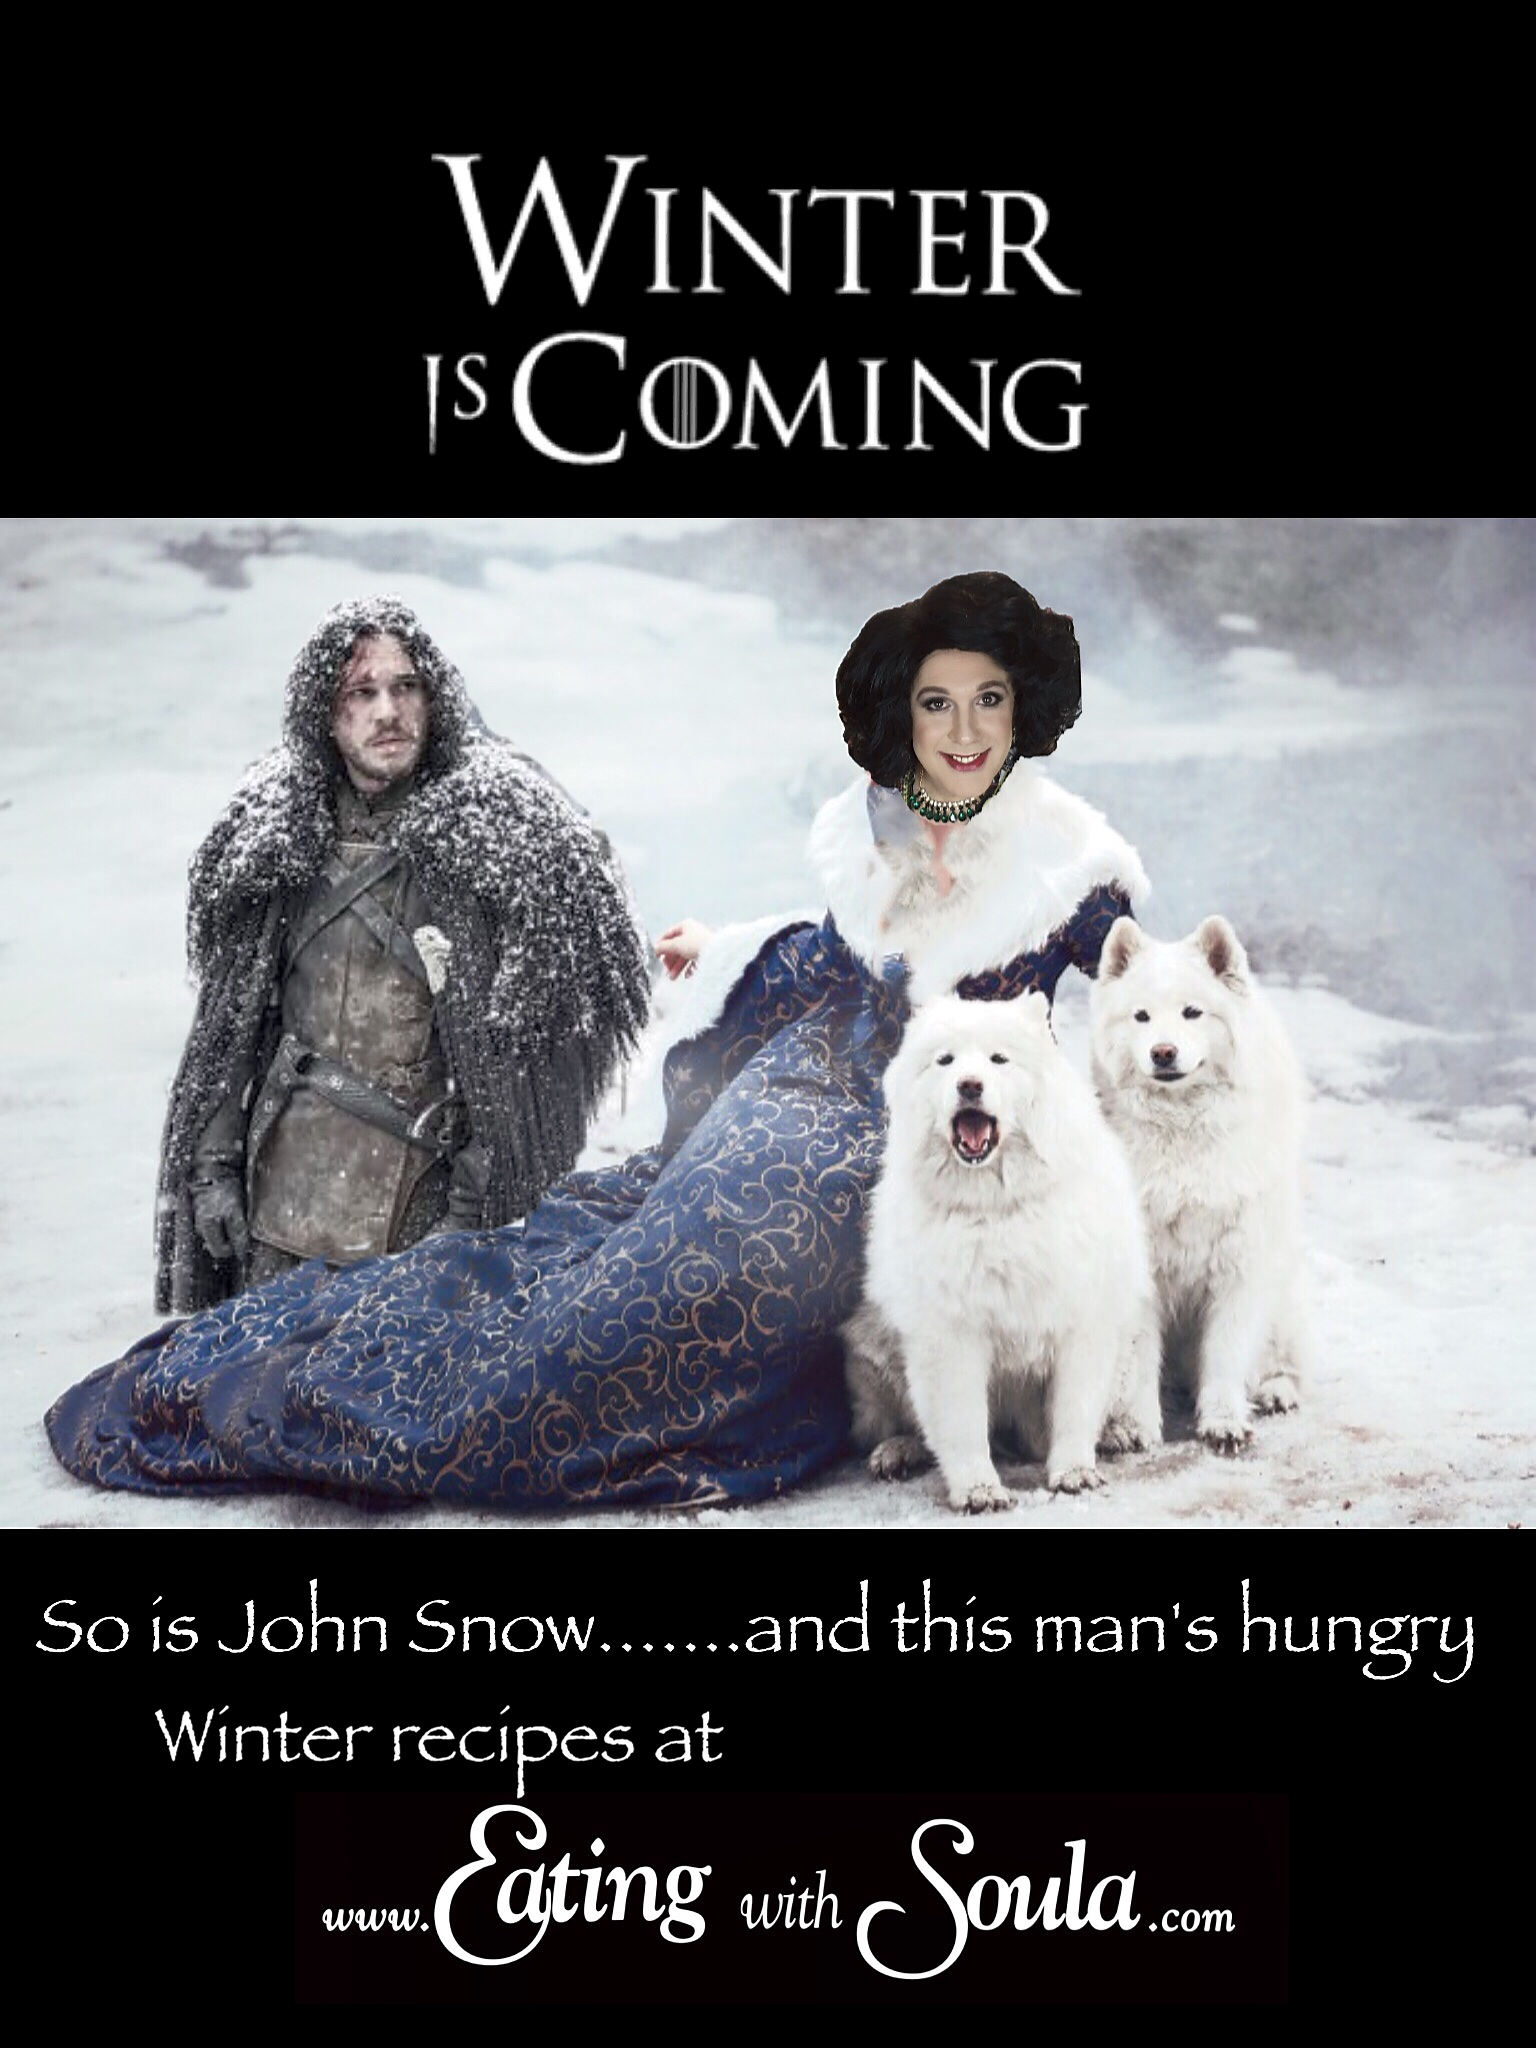 Winter is here and John Snow is hungry